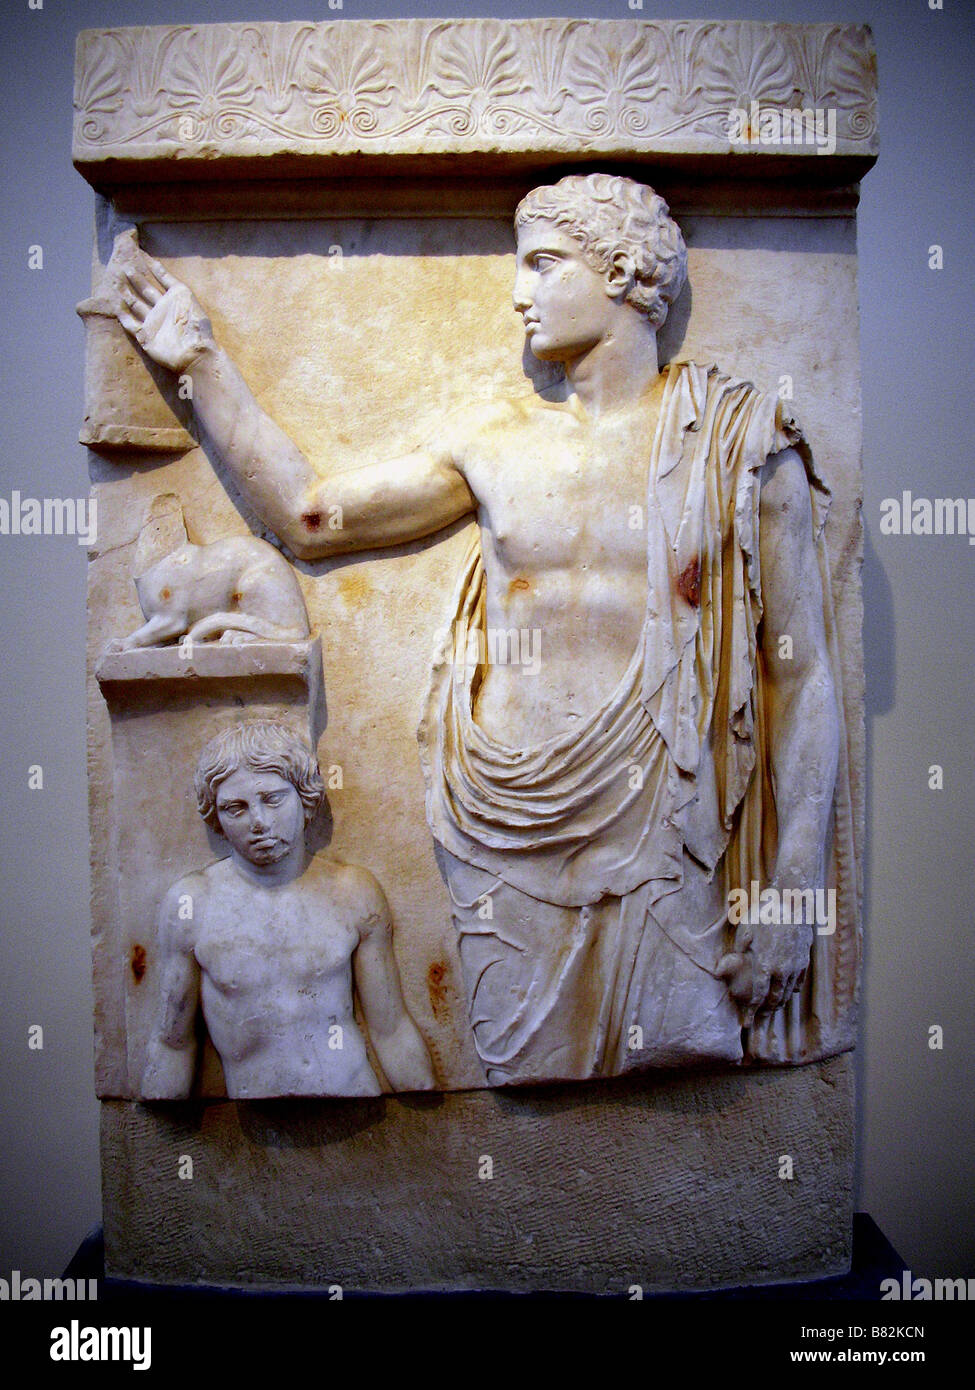 Athens museum stele stock photos athens museum stele for Graue stuhle